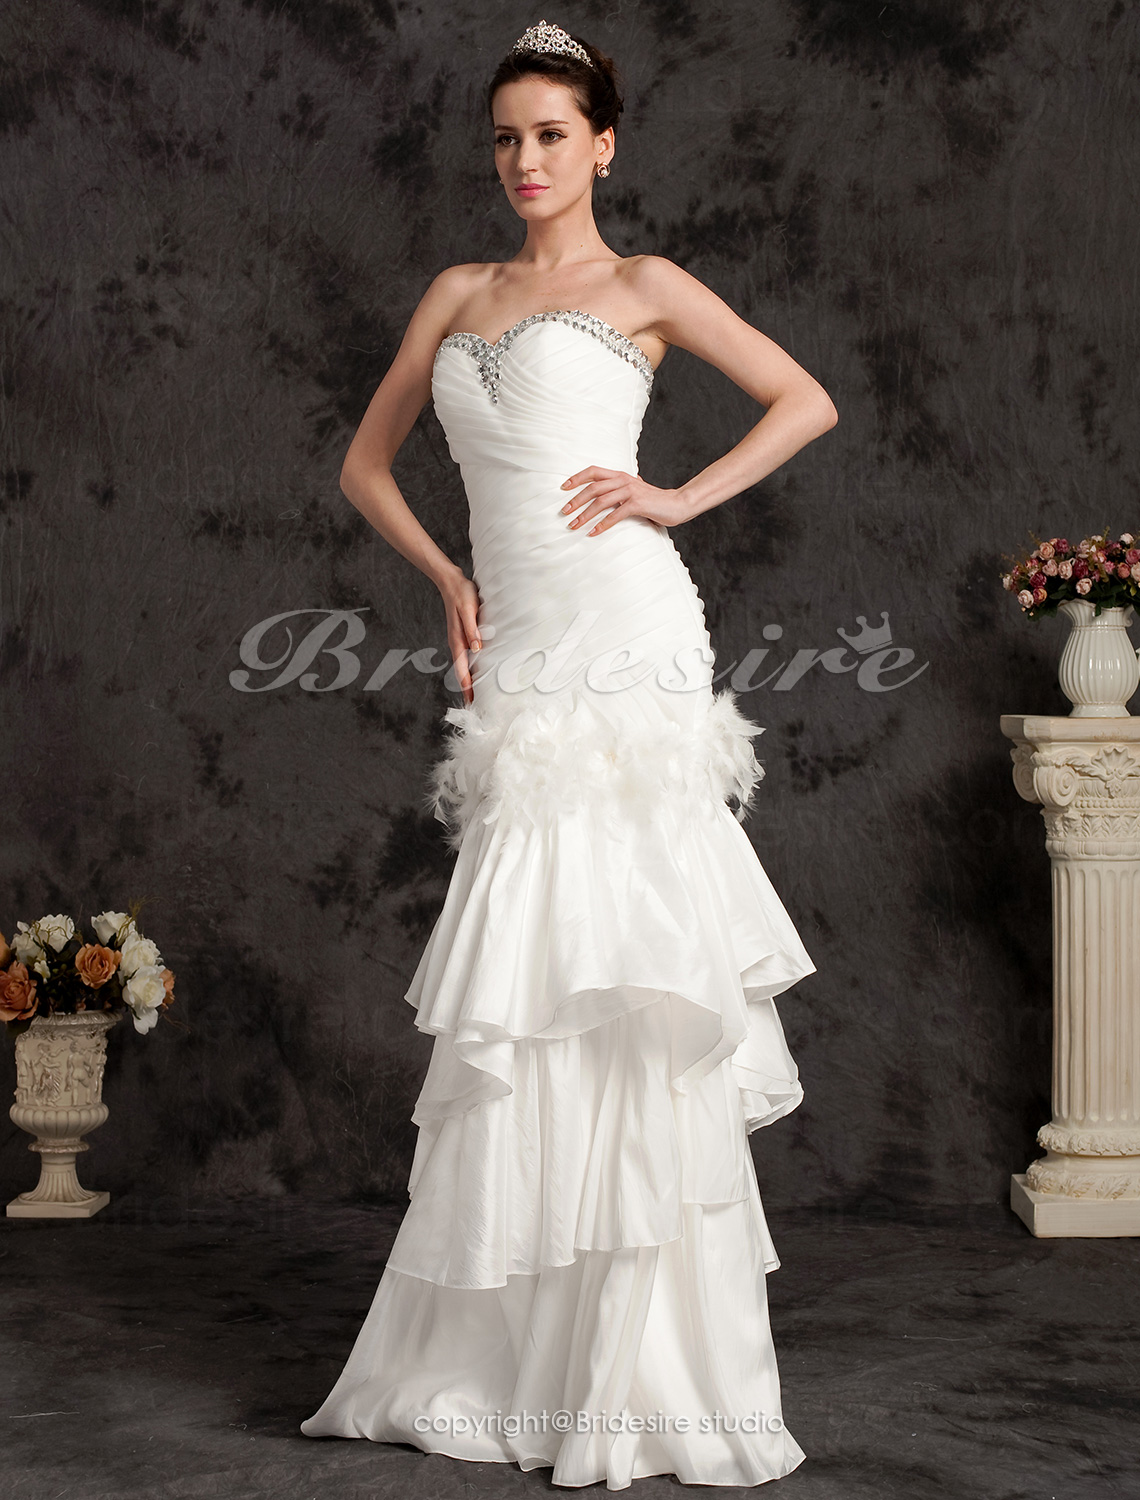 Trumpet/Mermaid Two-In-One Sweetheart Organza And Satin Floor-length Wedding Dress